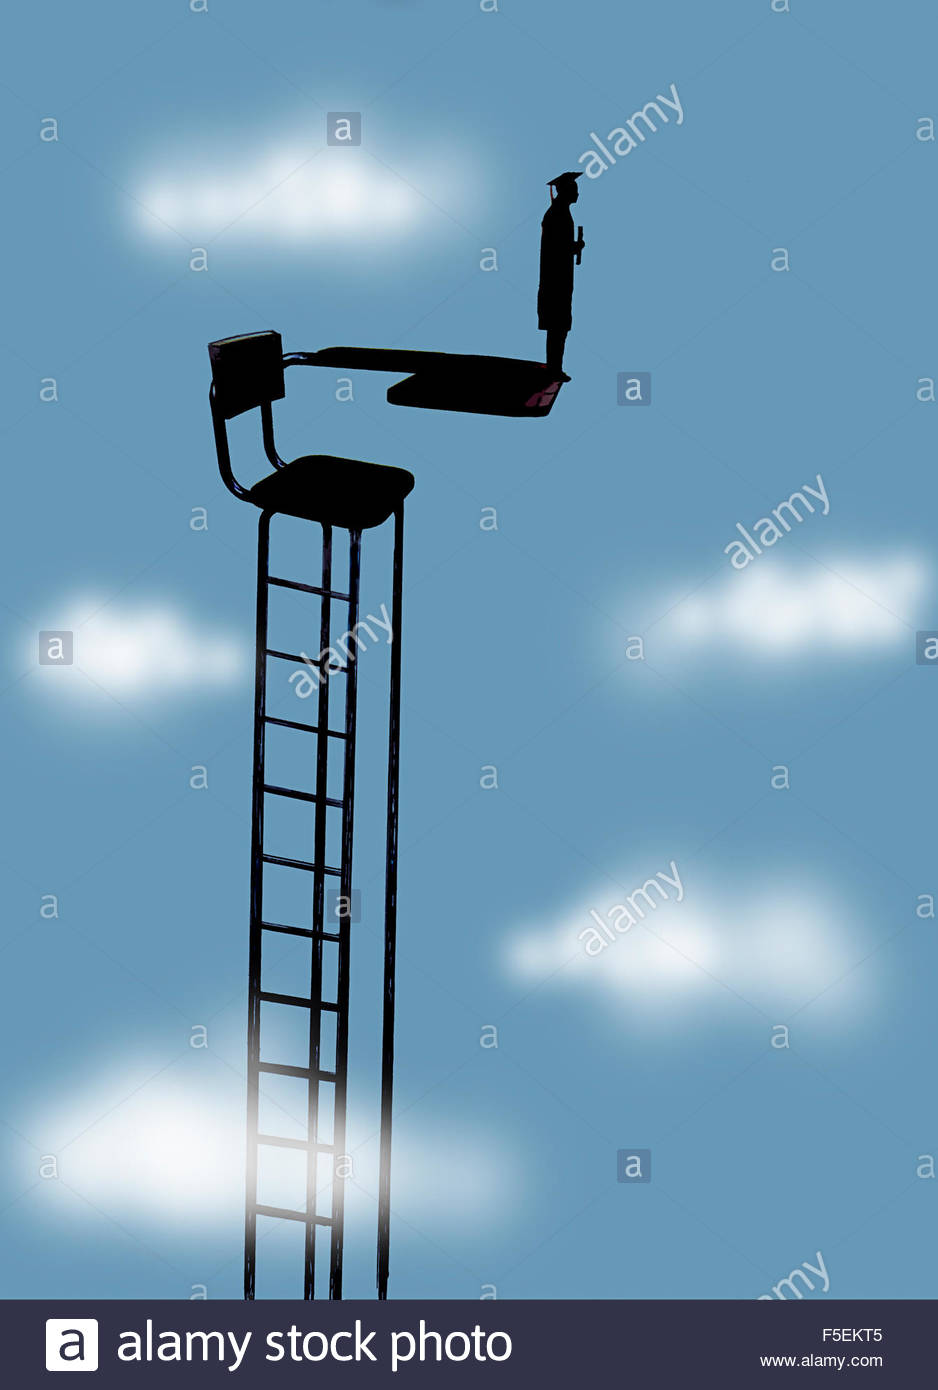 Graduate holding degree on top of desk chair diving board - Stock Image